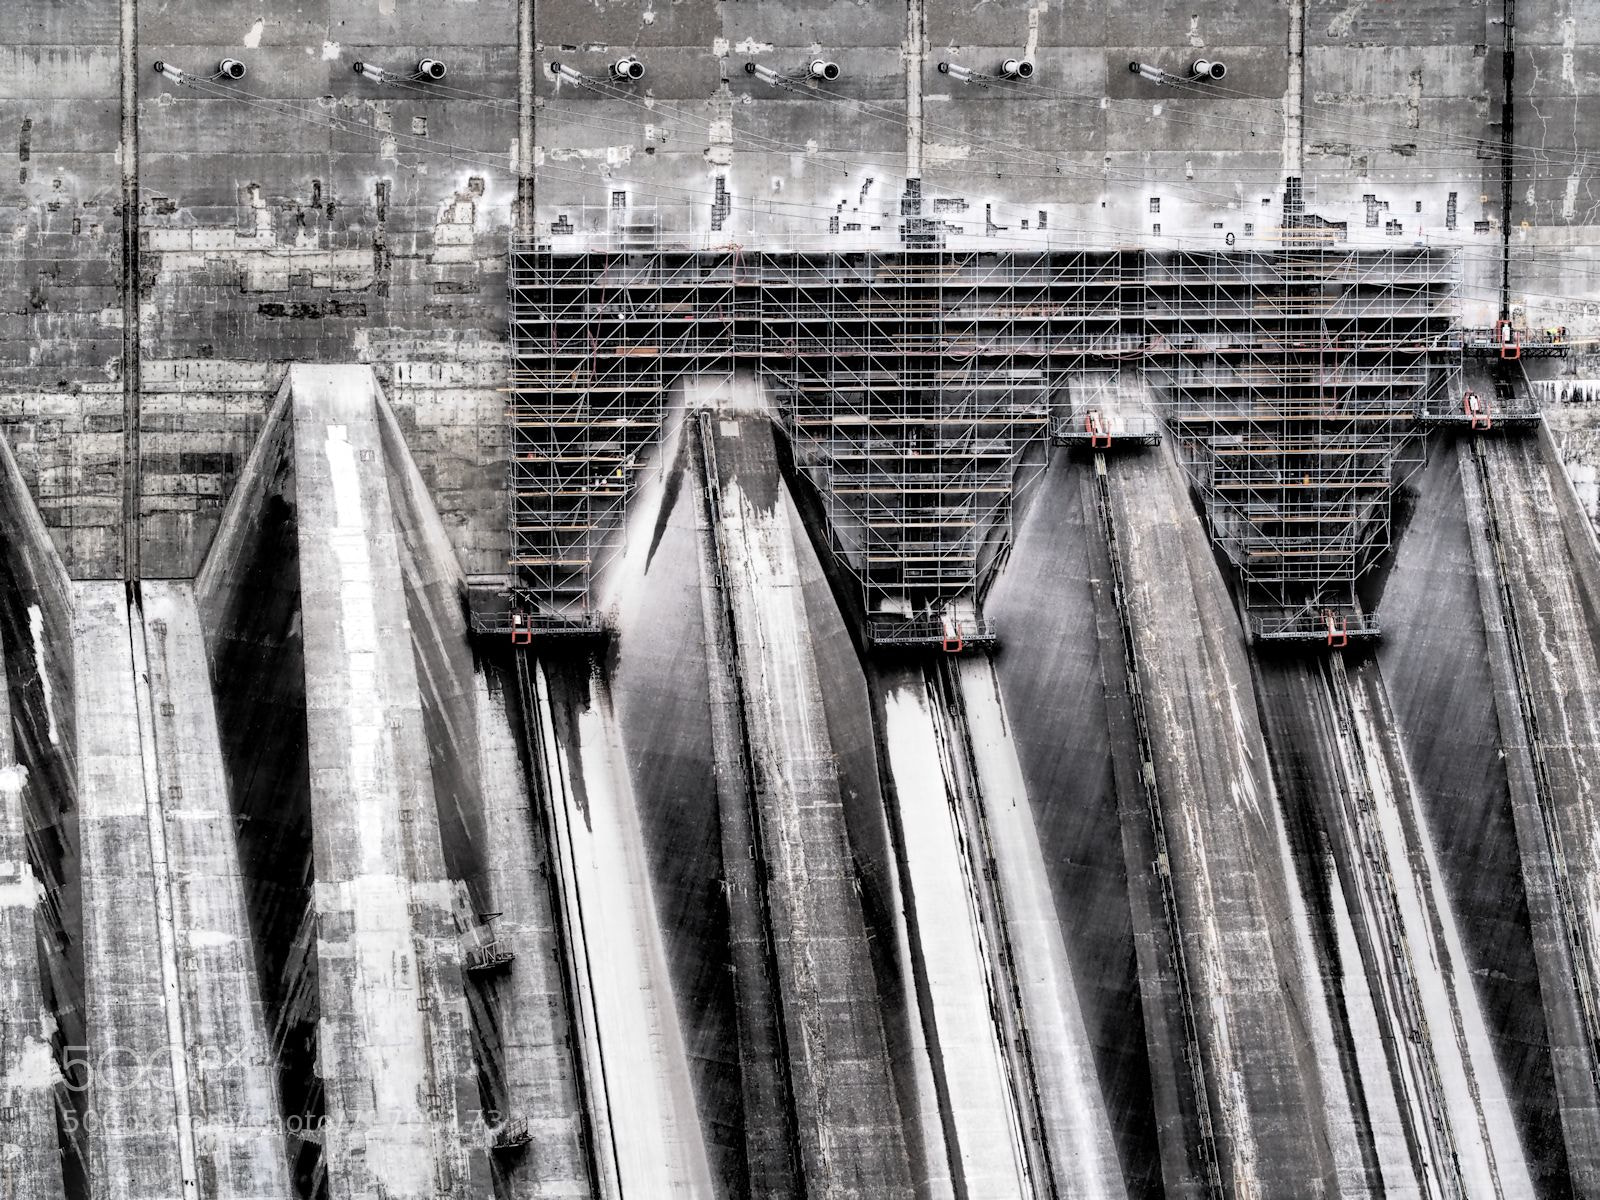 Photograph Spillway Scaffolding by Grant MacDonald on 500px